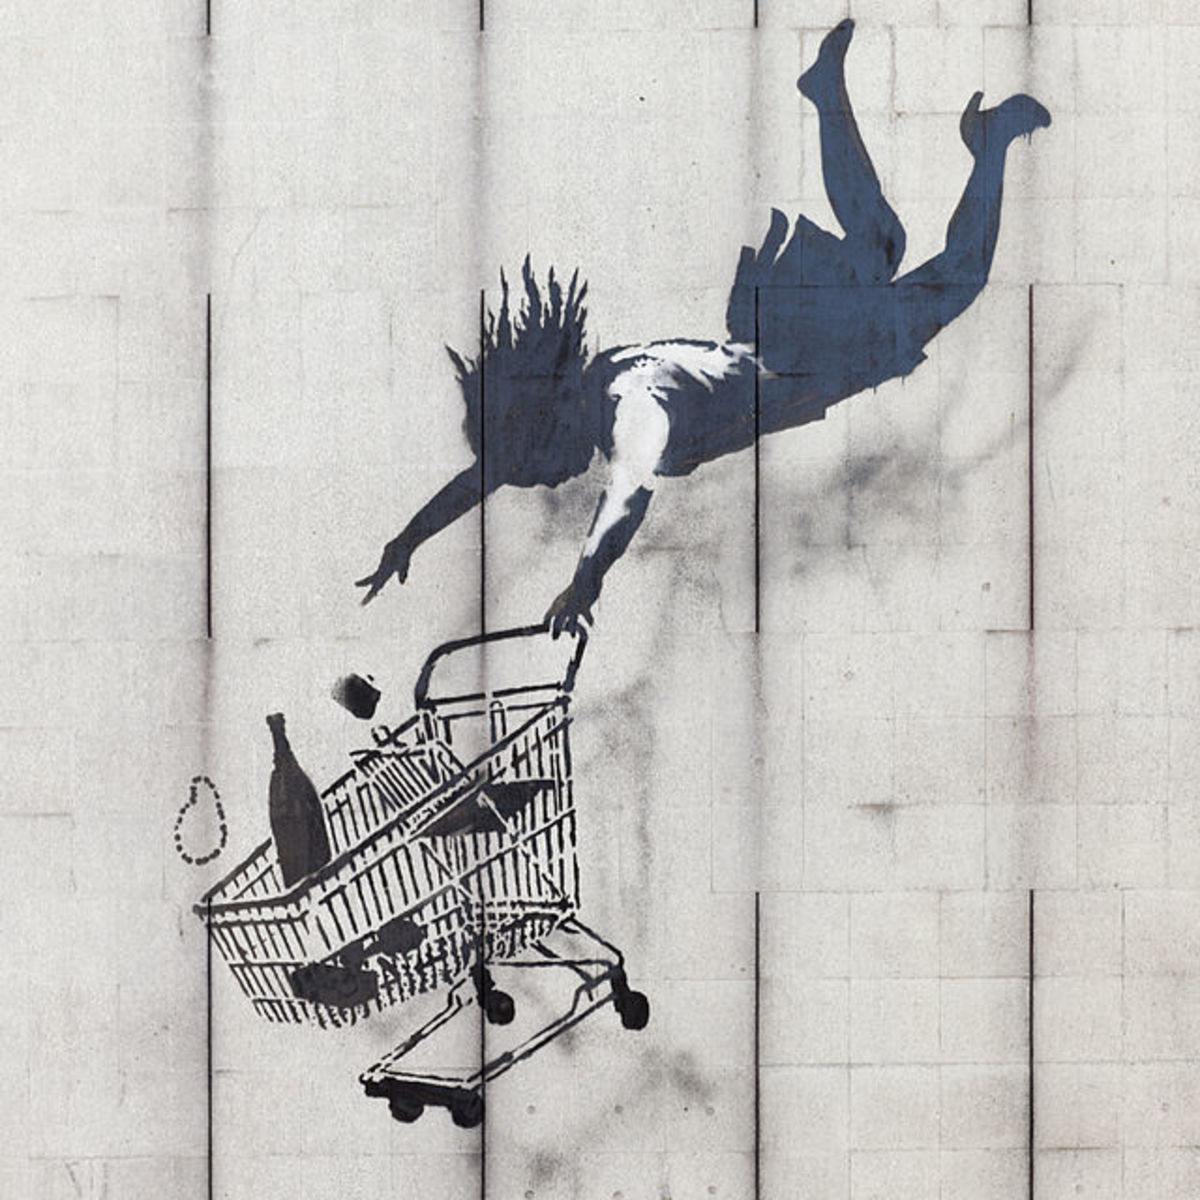 Banksy—Who He Is and Clues About His Identity